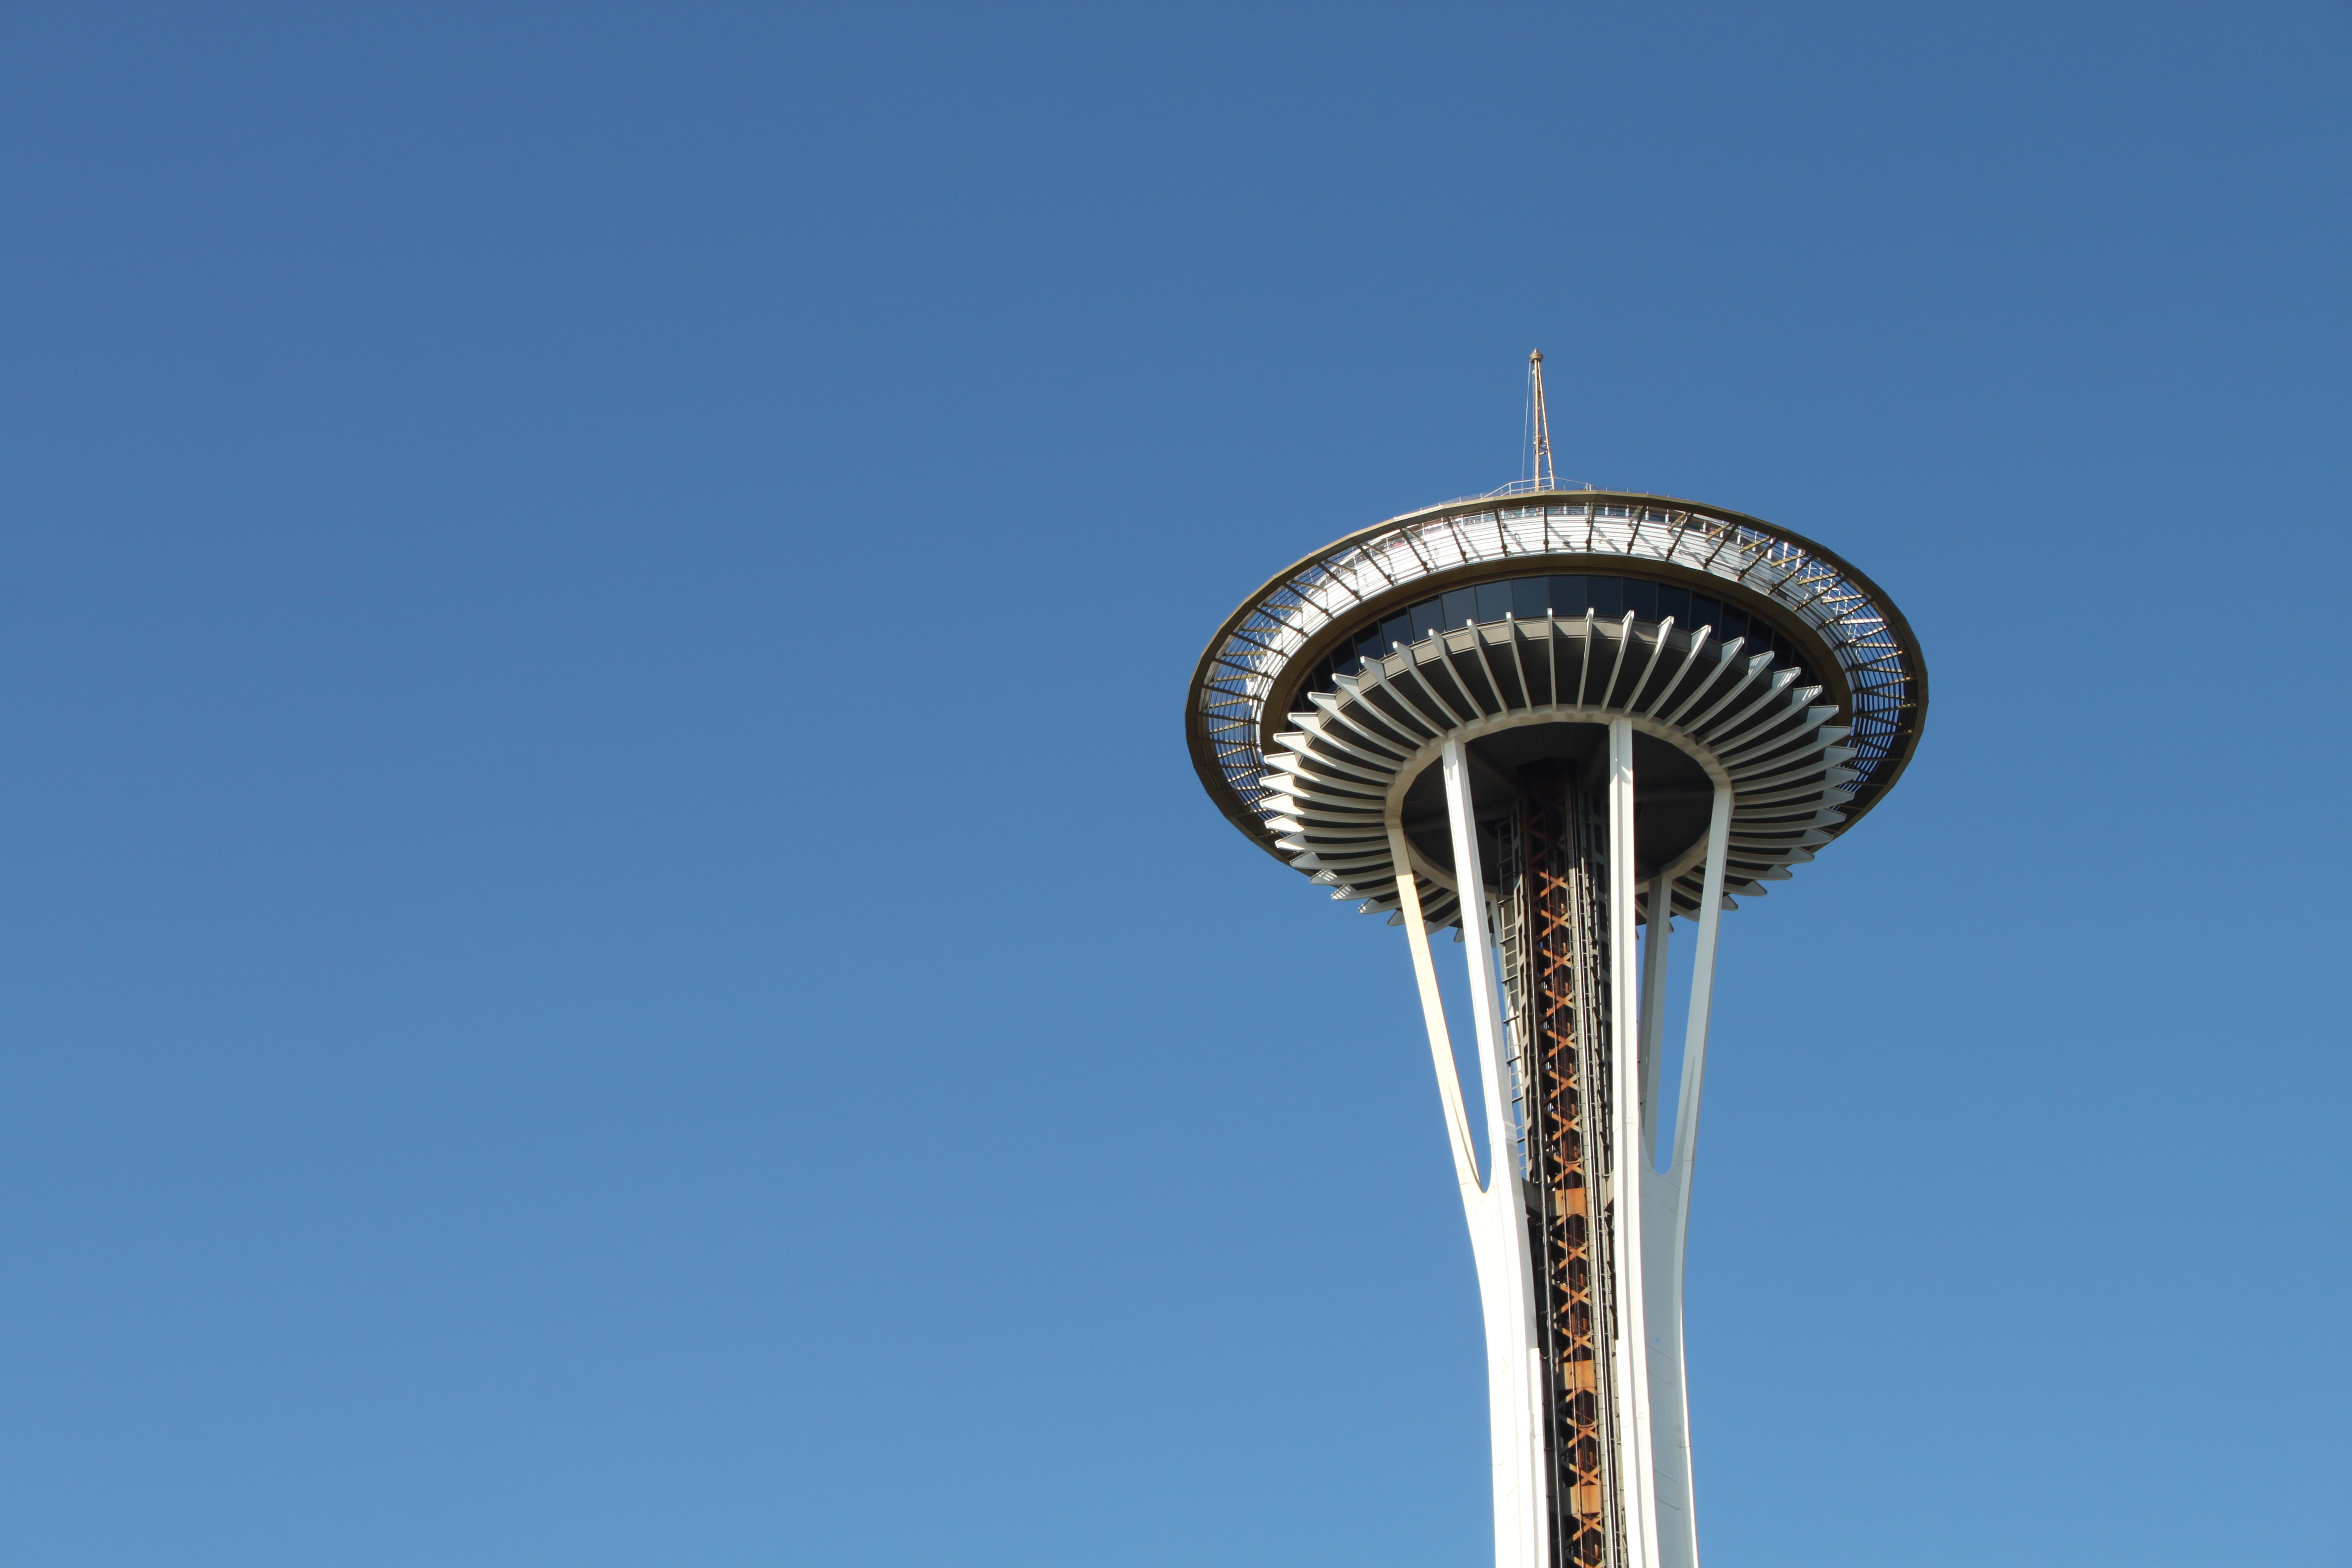 Iconic Seattle Space Needle against a blue sky